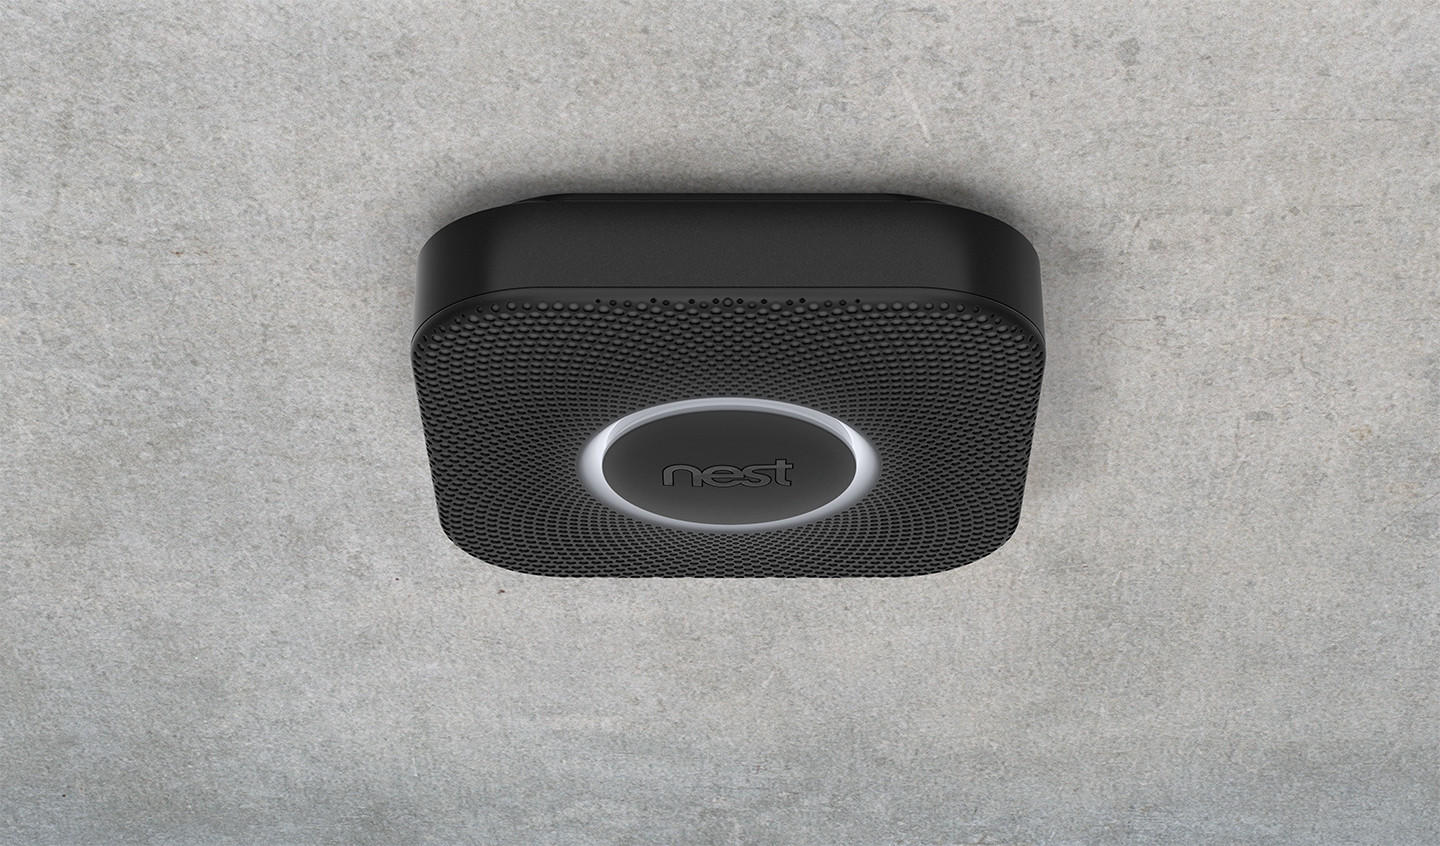 Nest this week halted sales of the Nest Protect, a smart smoke alarm.